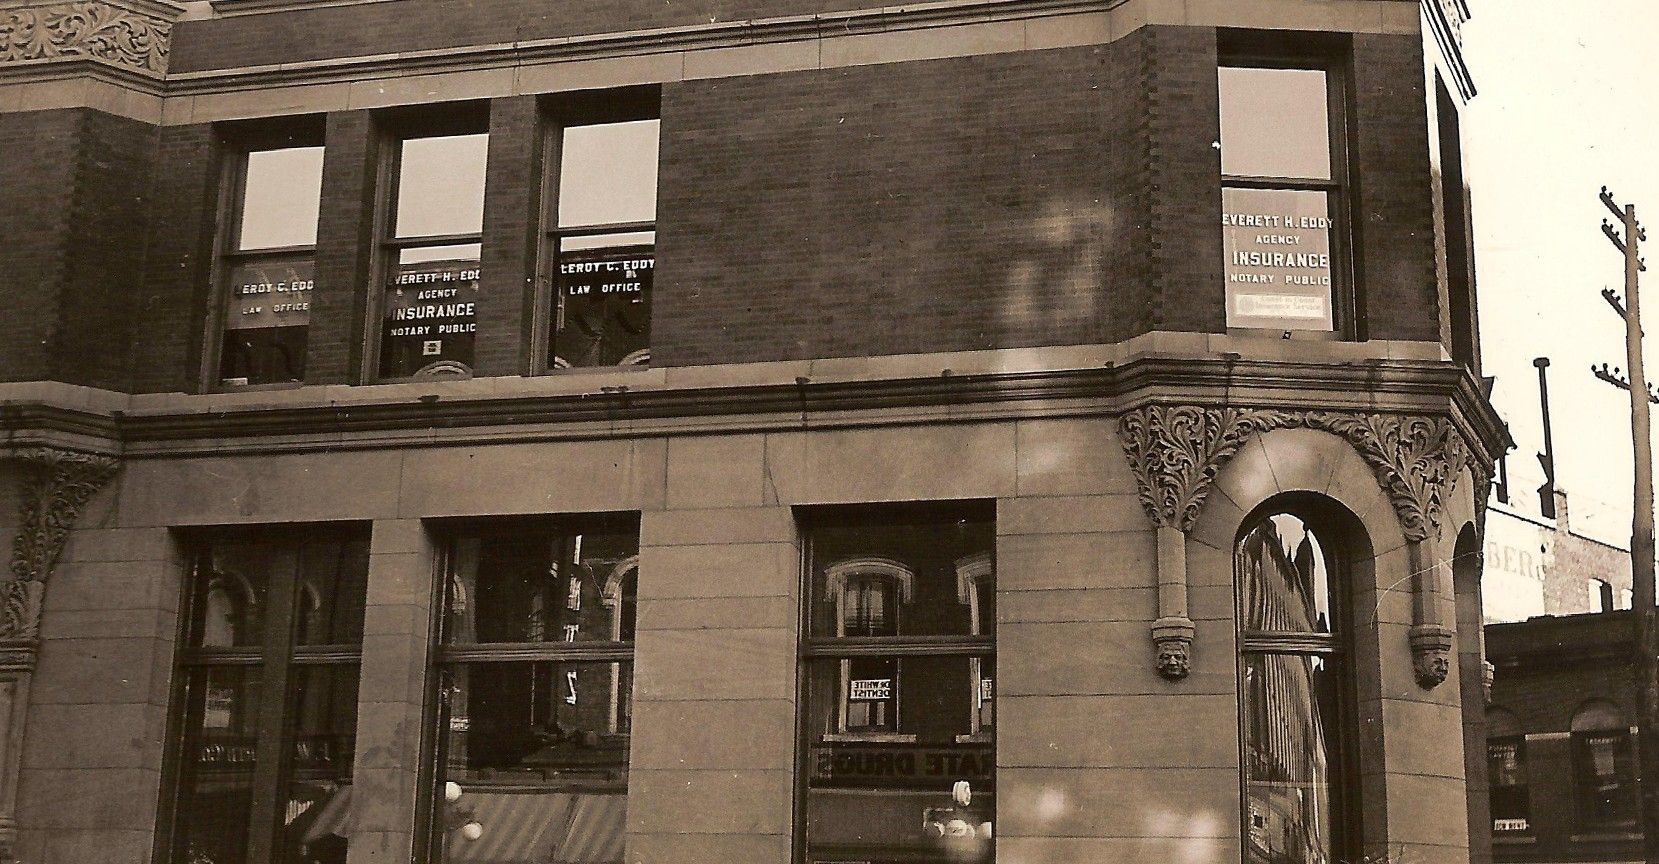 1935 Six Photographs Of The Everett H Eddy Insurance Agency And